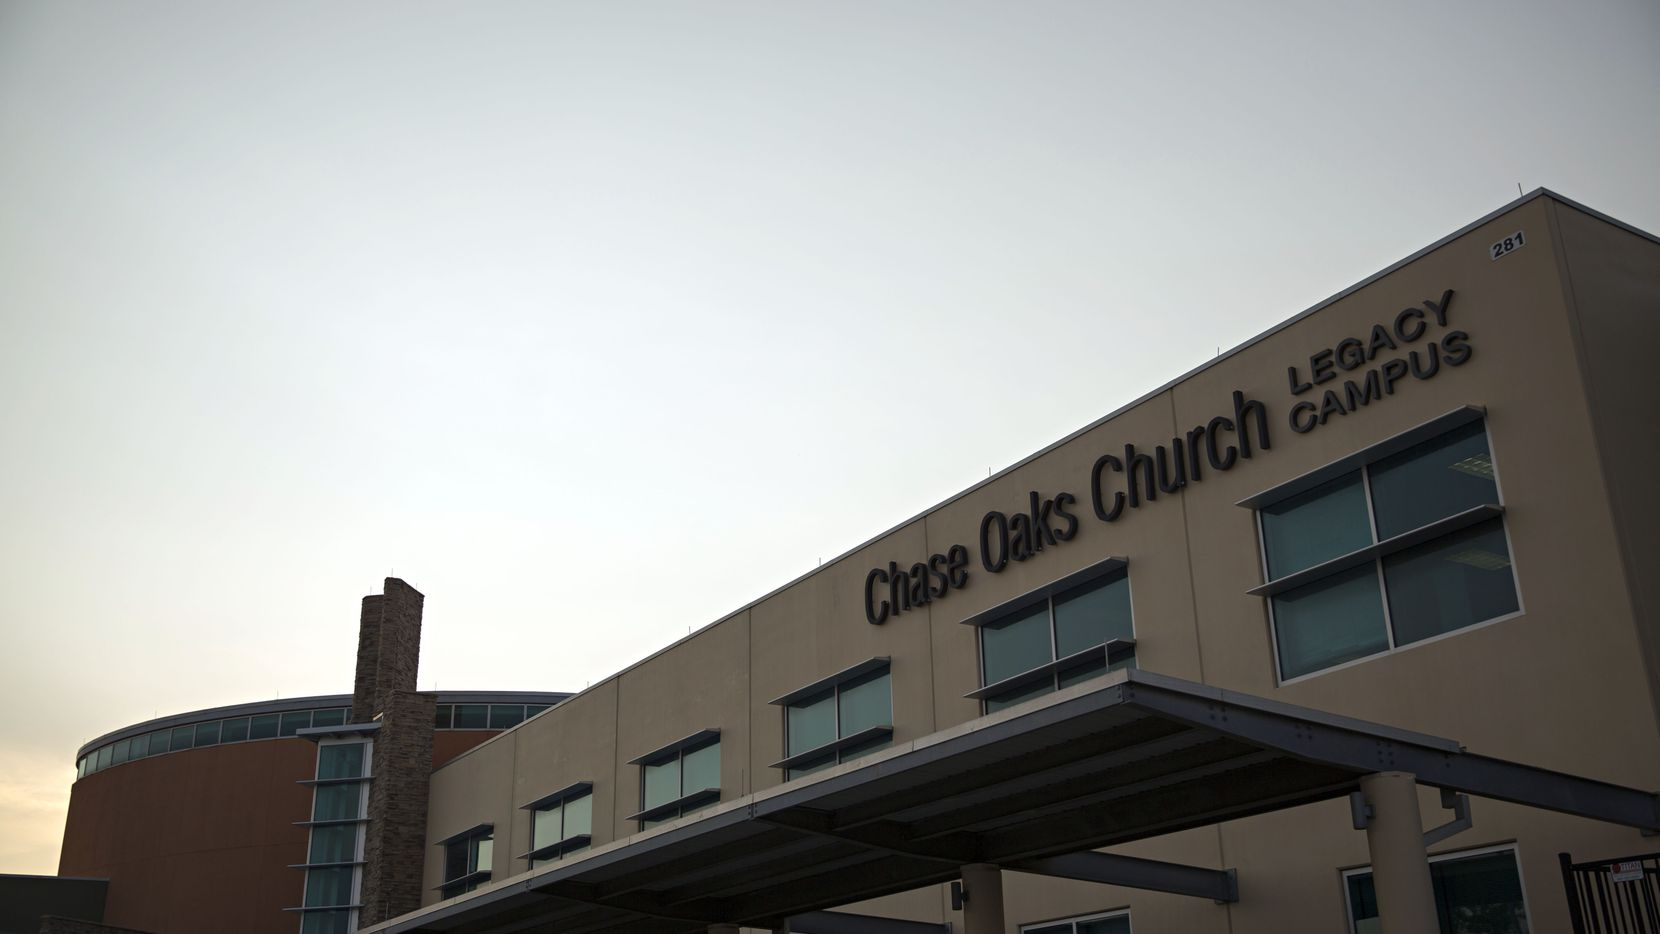 Chase Oaks Church in Plano will be the site of one of the YMCA's Learning Academies.